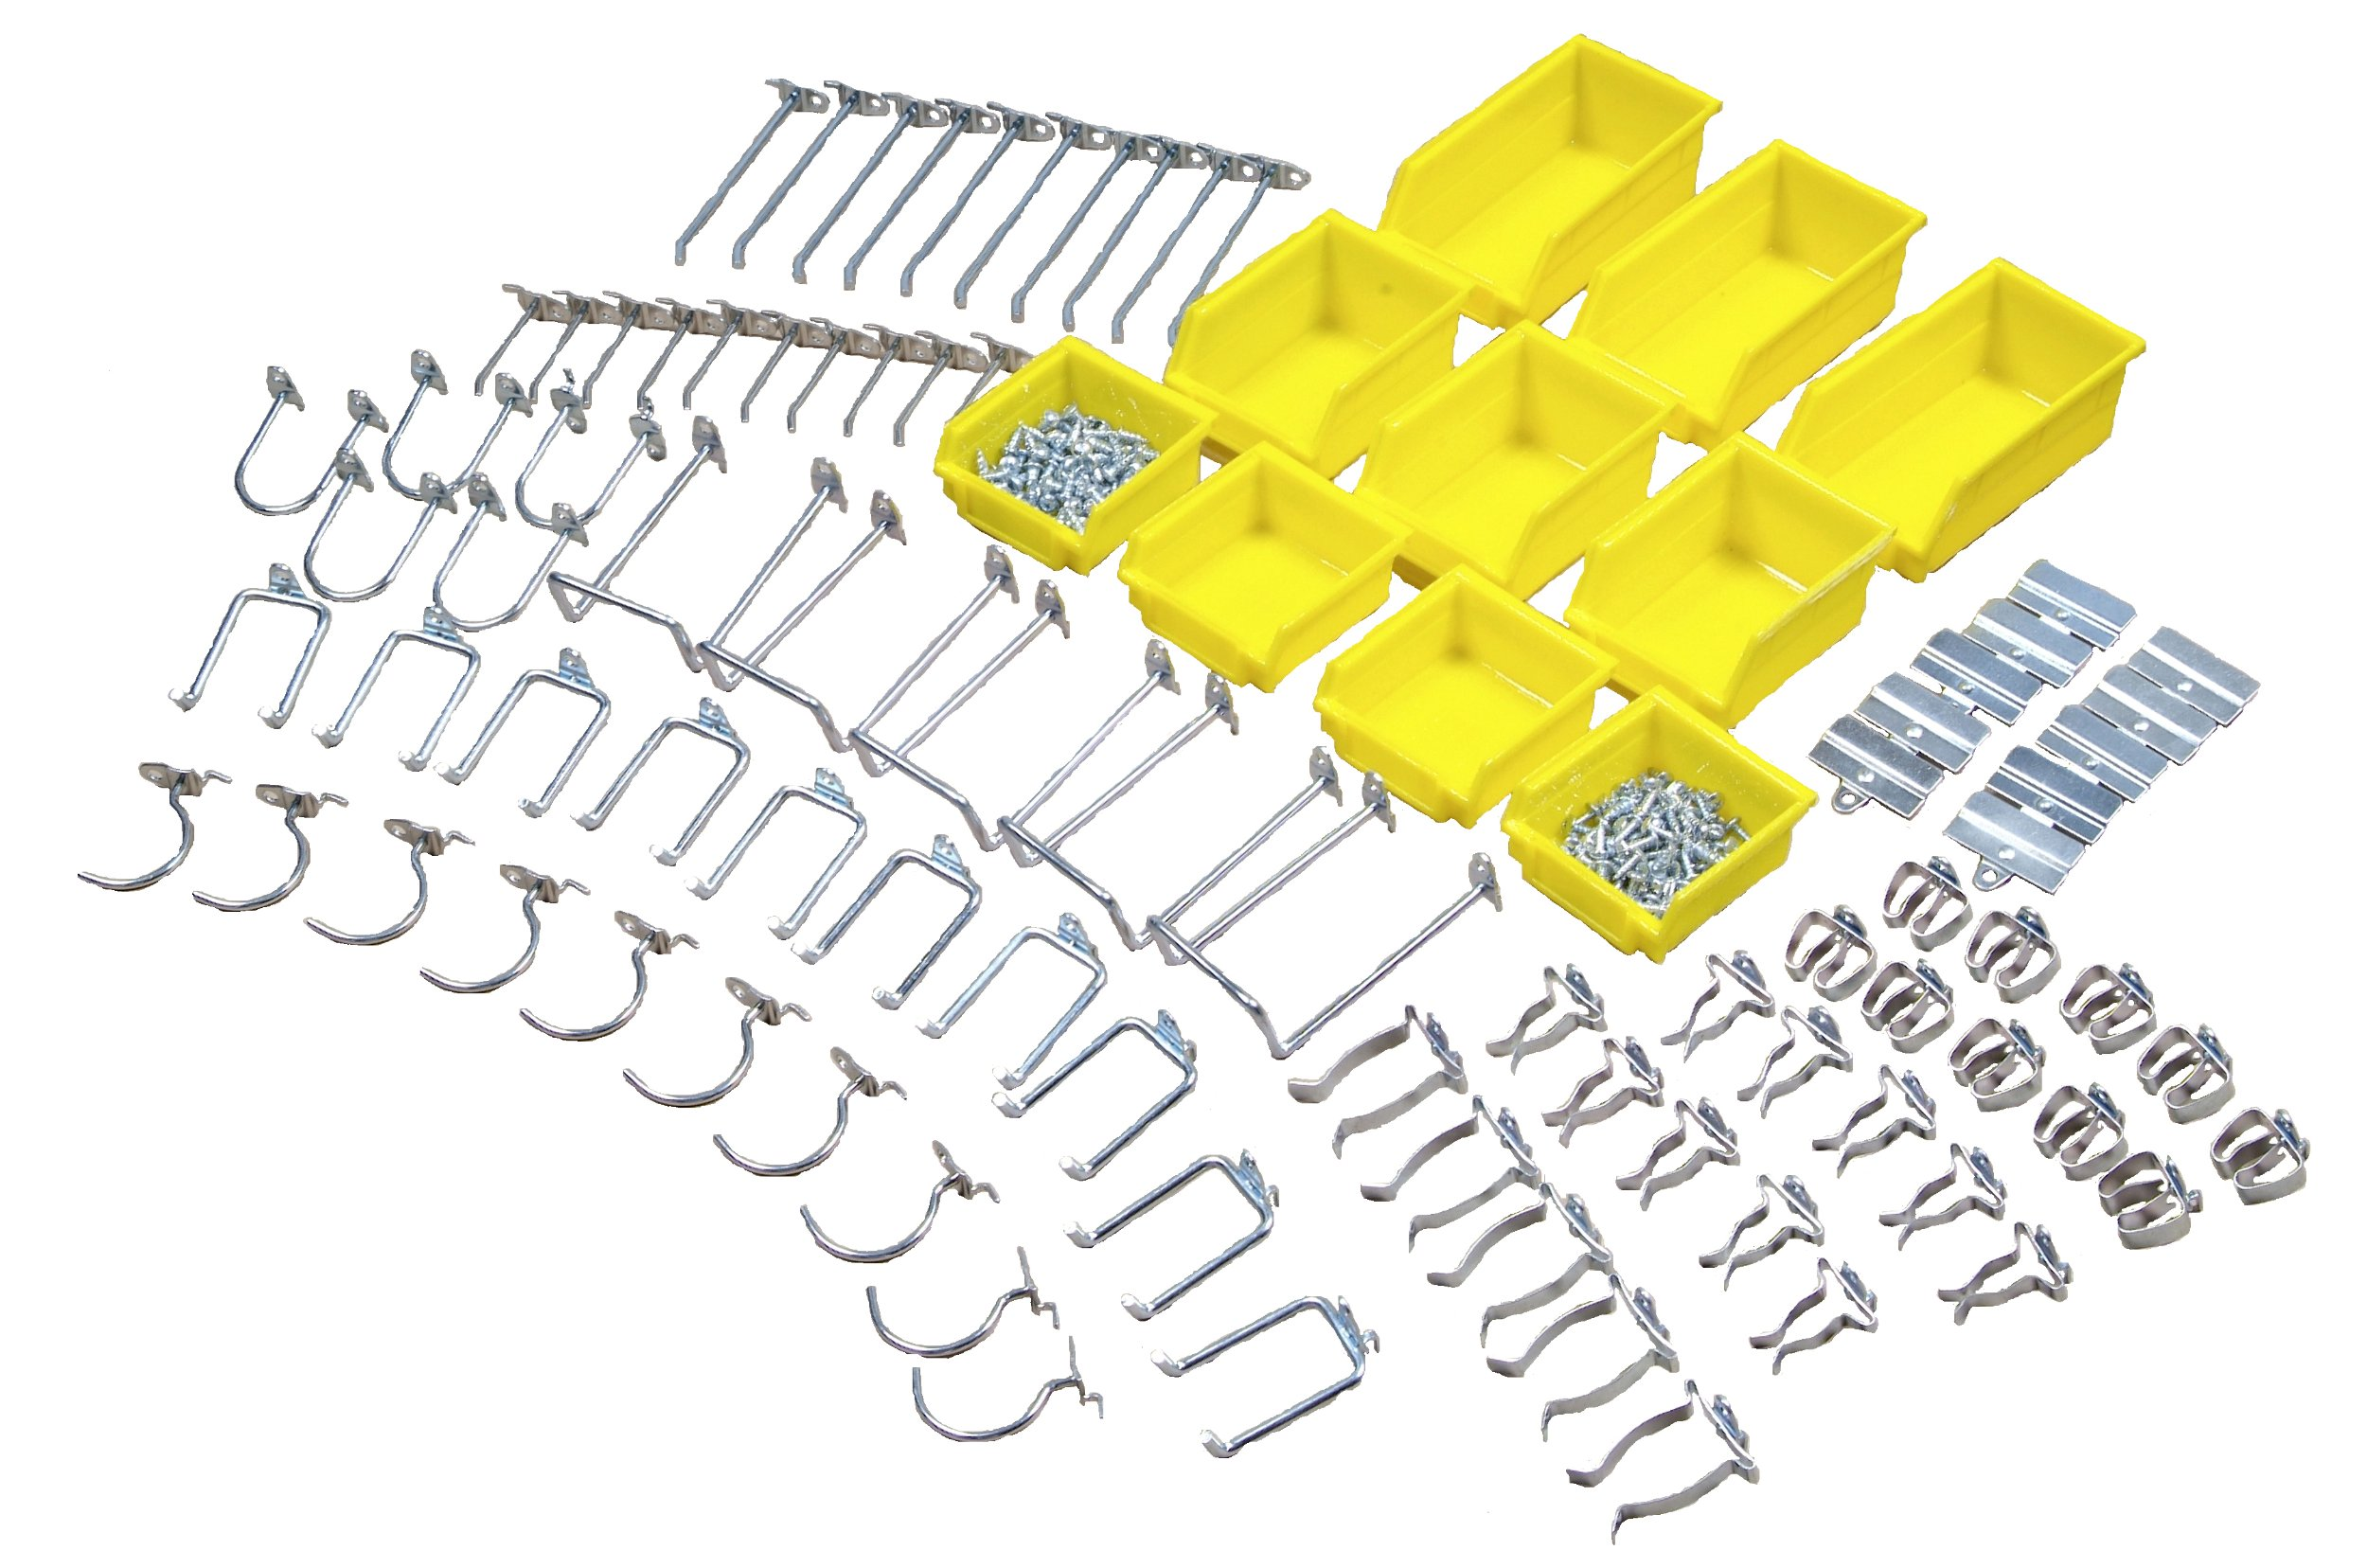 Triton Products 76995 DuraHook Zinc Plated Steel Hook and Bin Assortment for DuraBoard 85 Assort Hooks and 10 Assort Bins, 95-Piece by Triton 2